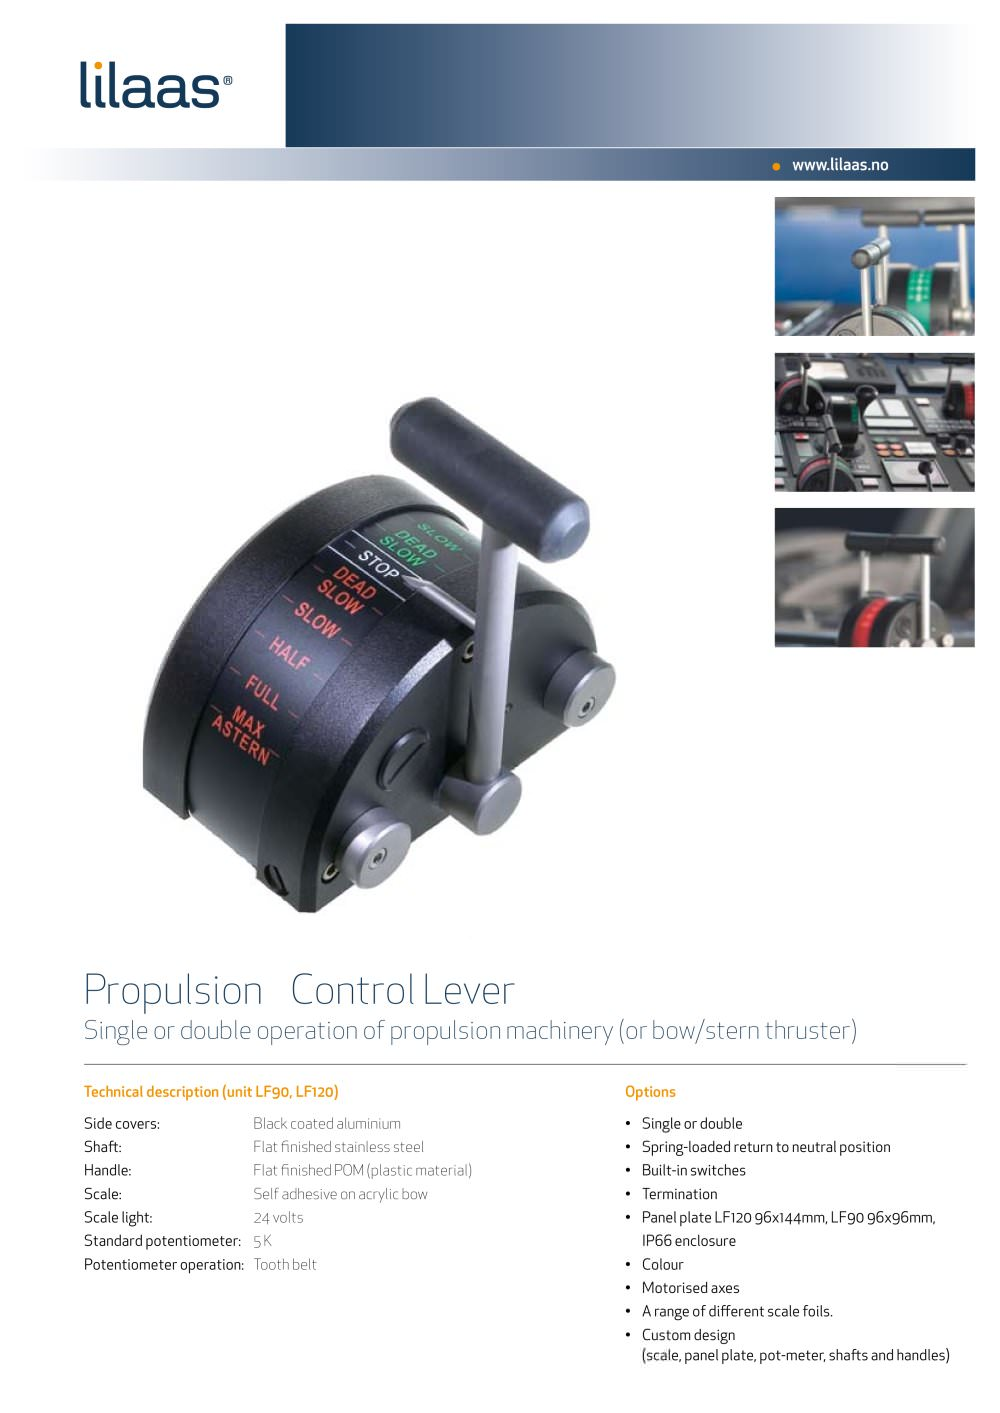 engine control handle for ships - Lilaas - PDF Catalogues ...